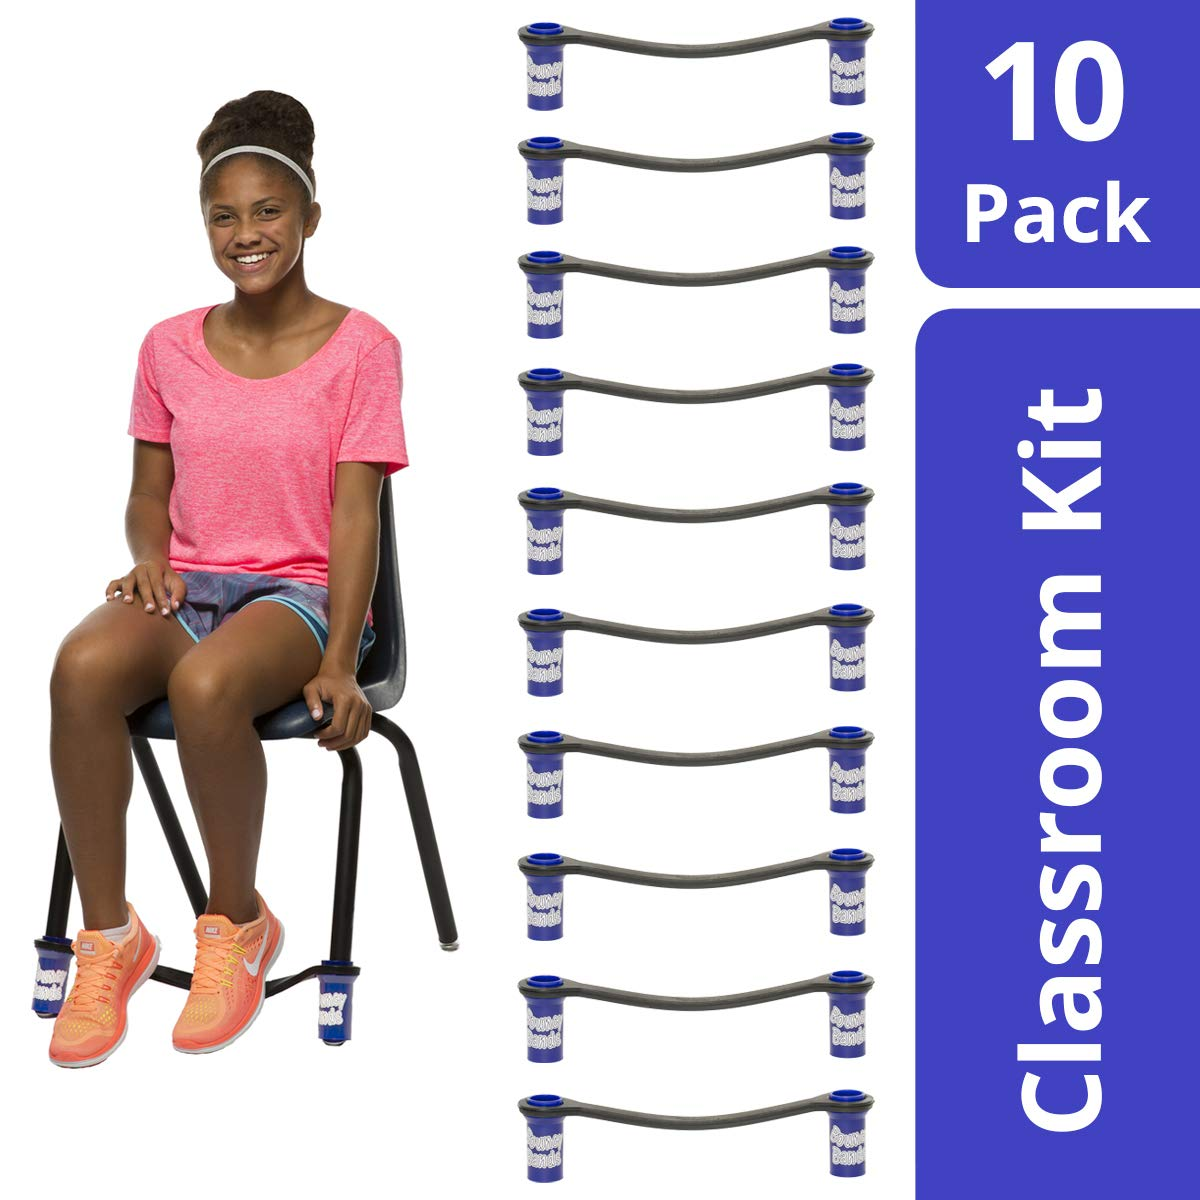 Original Bouncy Bands for Middle School and High School Chairs (Blue, Pack of 10), Educational Tool That Helps Kids Actively Learn and Stay Engaged